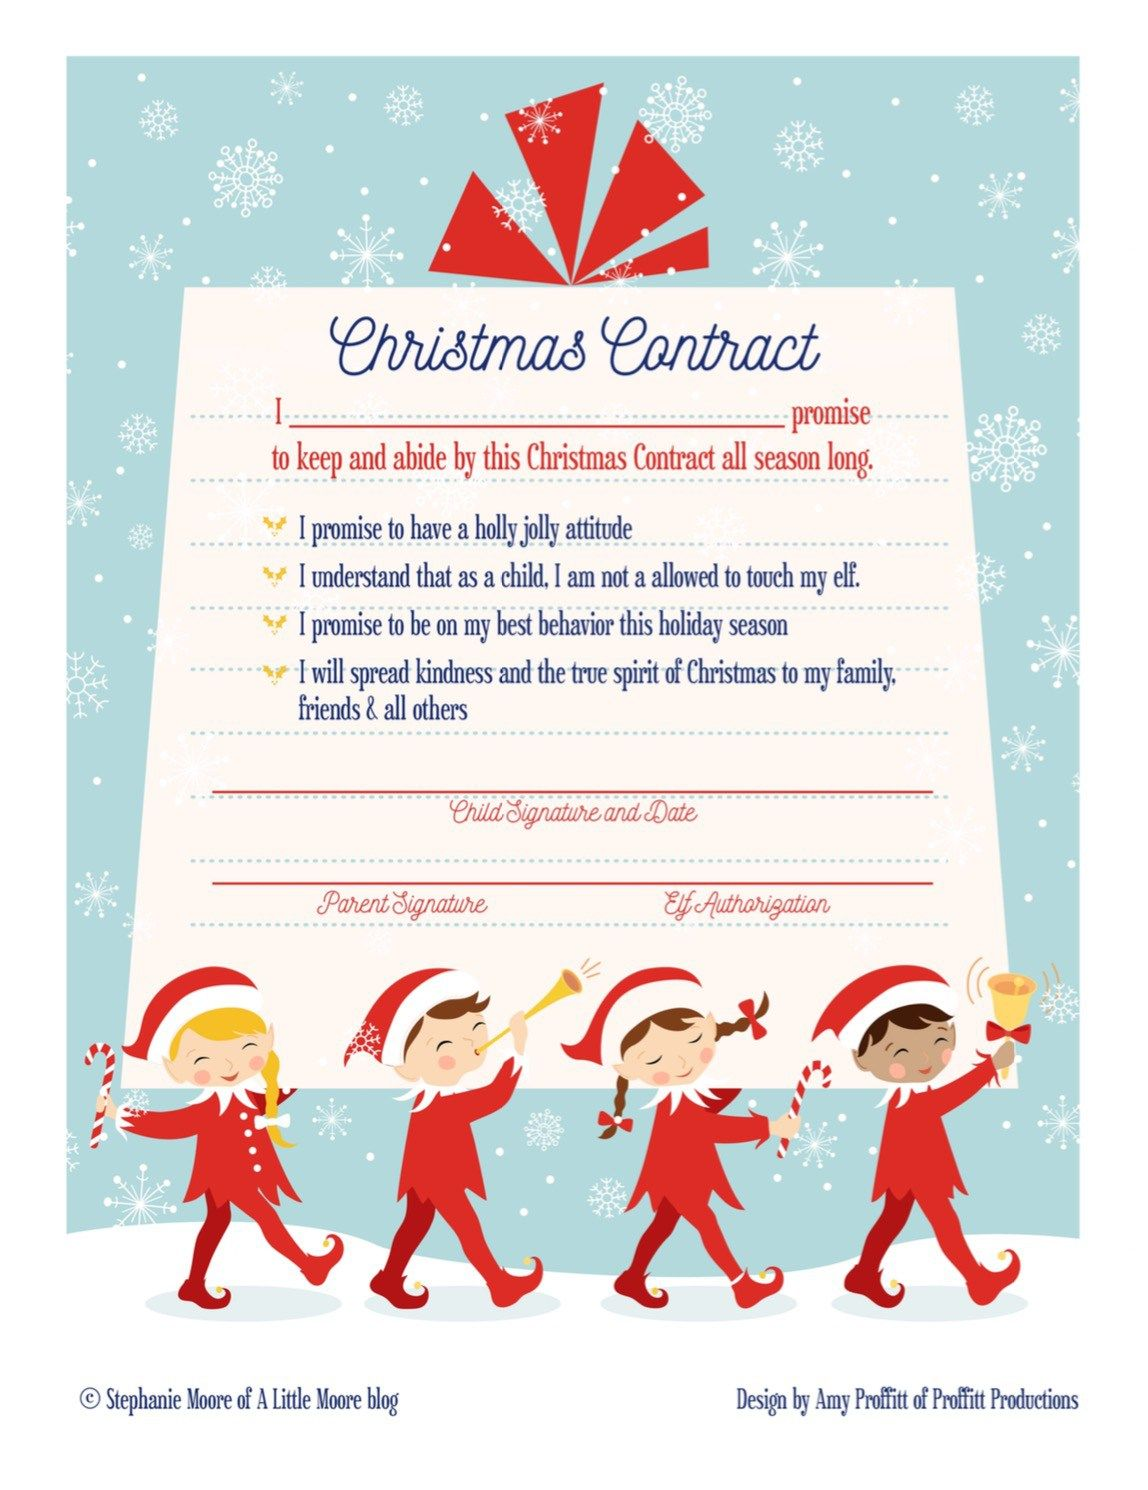 Day  Elf On The Shelf Christmas Contract  Elf On The Shelf Ideas